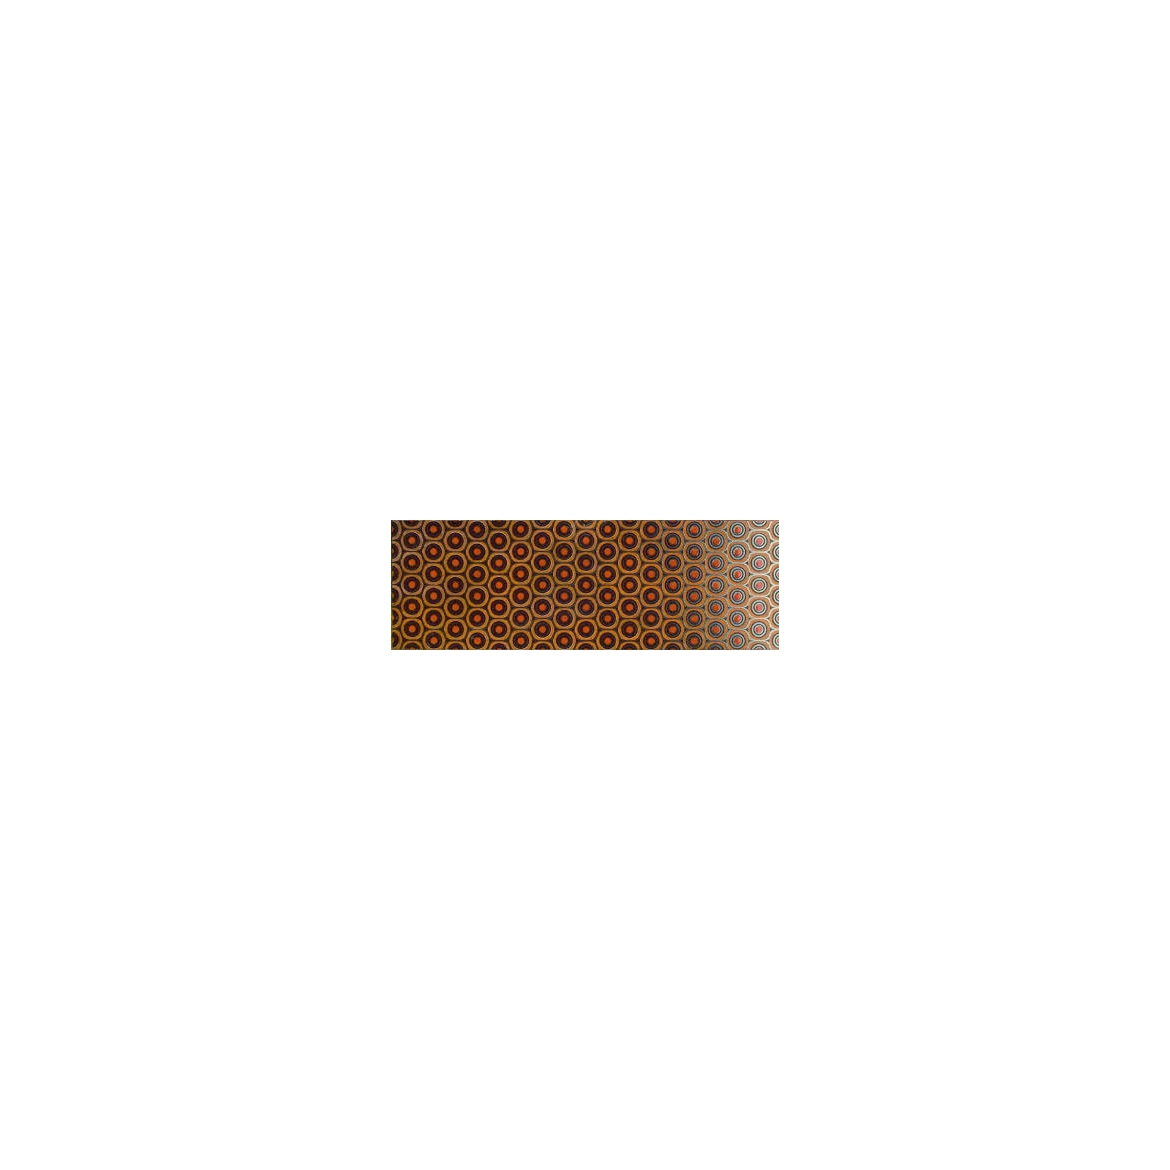 https://cerdesign.pl/509-large_default/p588-aparici-corten-oxido-decor-20x592-c355.jpg